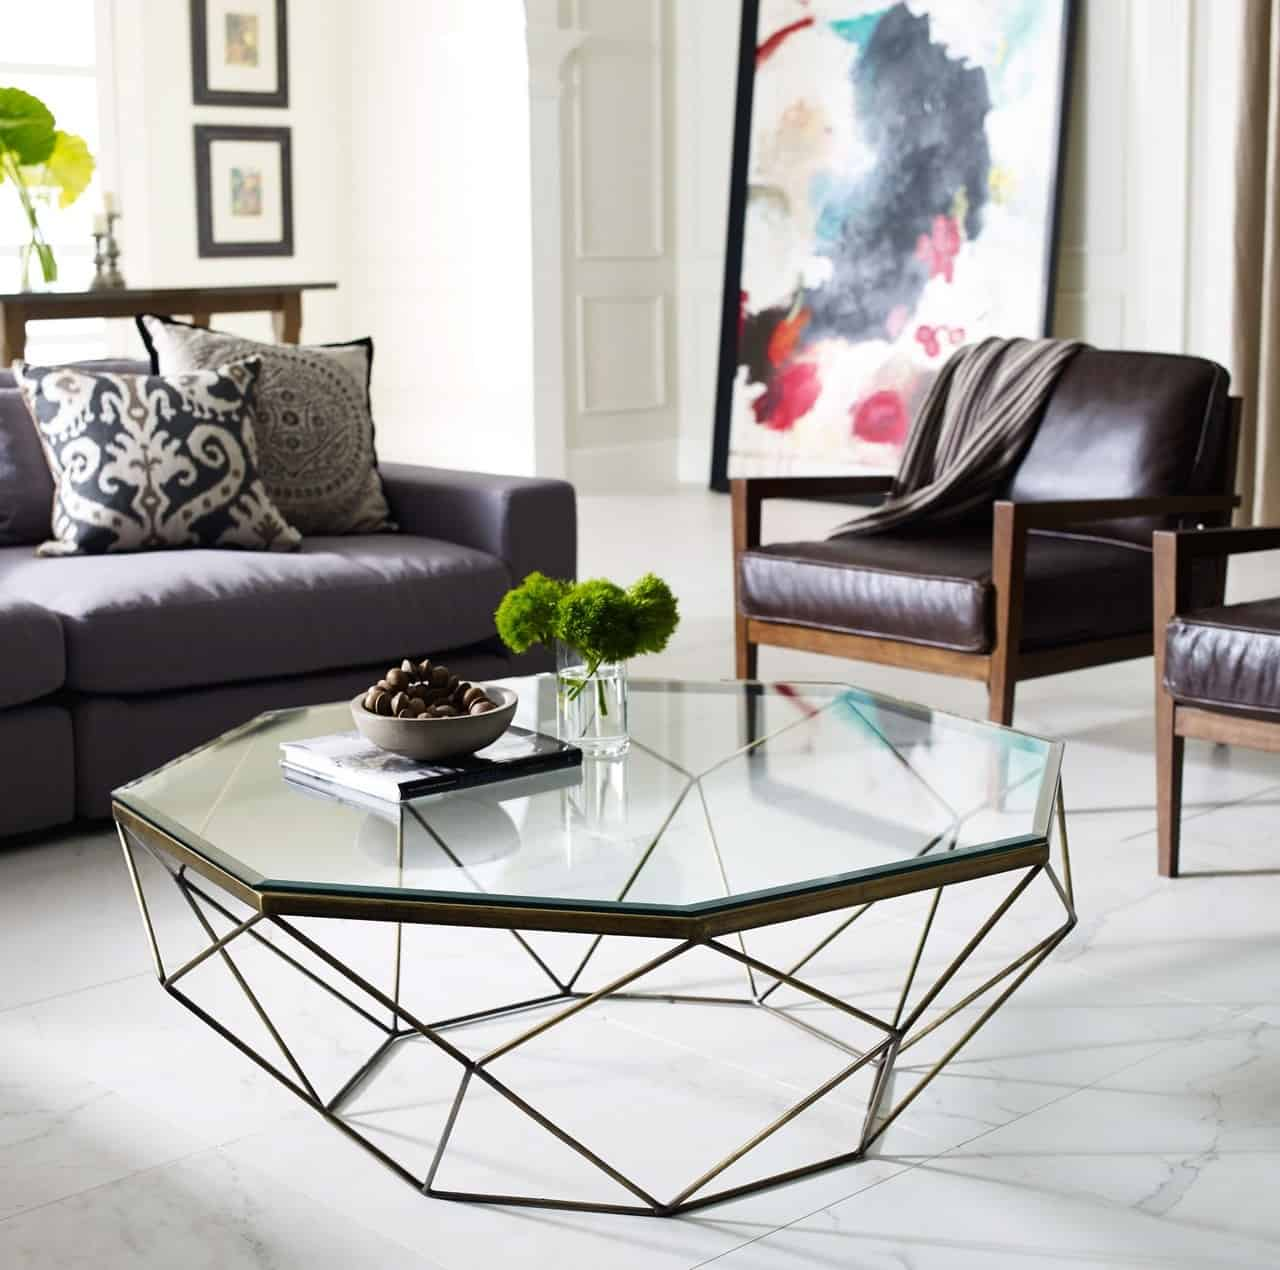 Modern coffee table trends for 2018 for Modern home decor tumblr